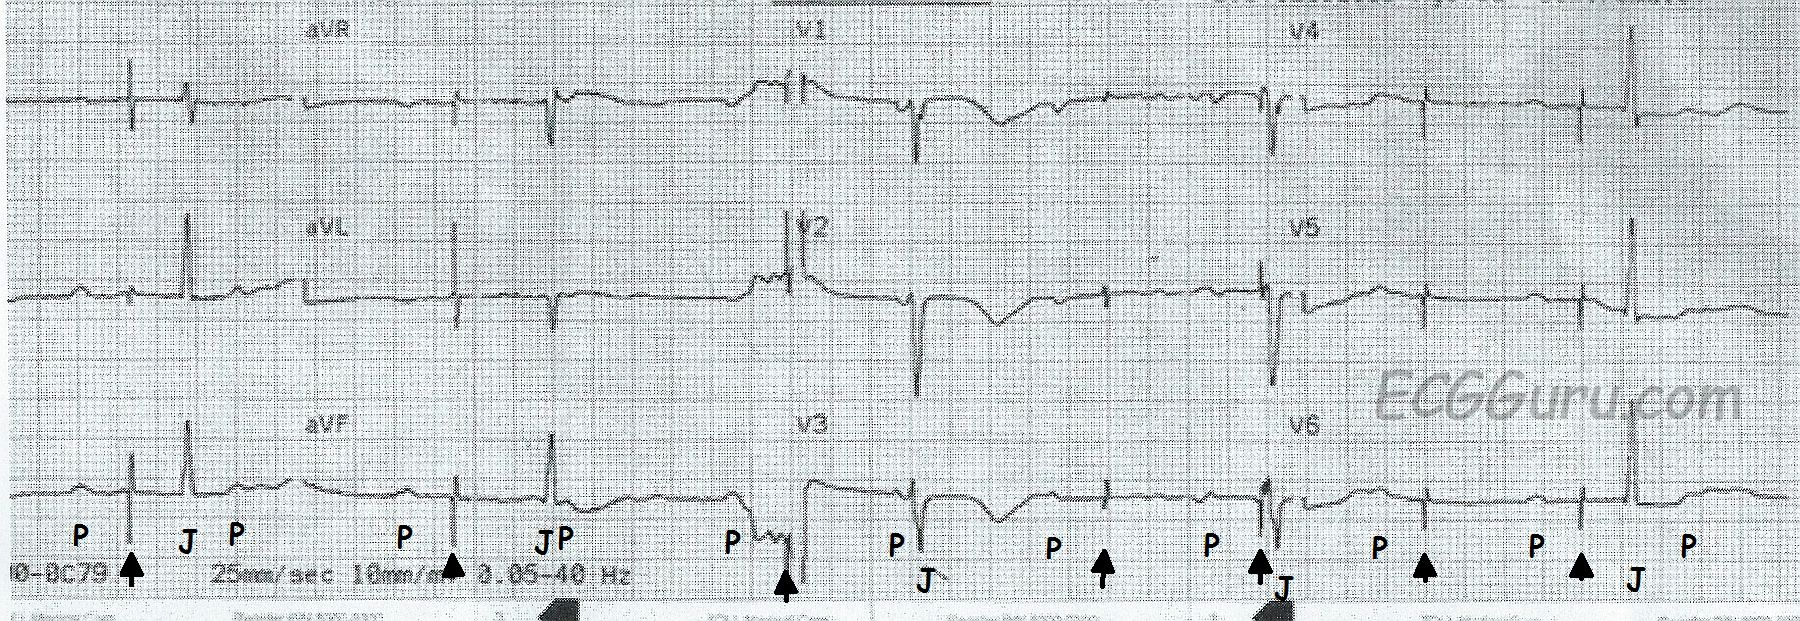 ecg basics  pacemaker failure to capture